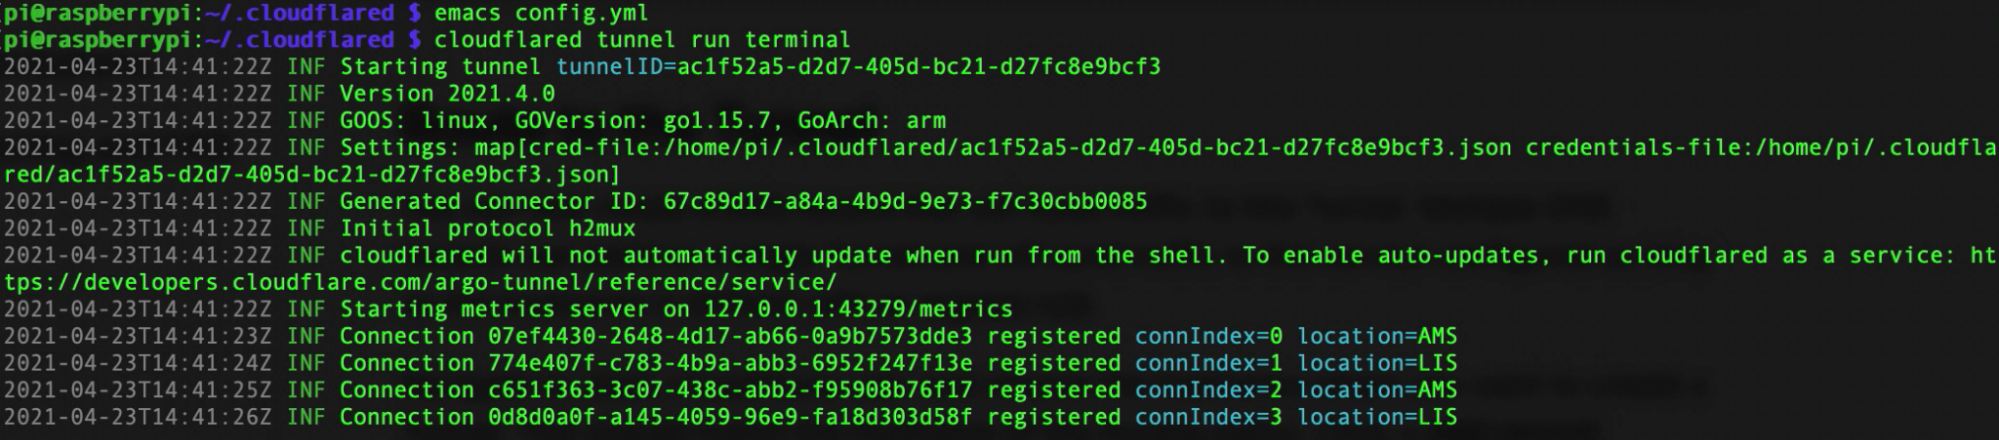 SSHing to my Raspberry Pi 400 from a browser, with Cloudflare Tunnel and Auditable Terminal